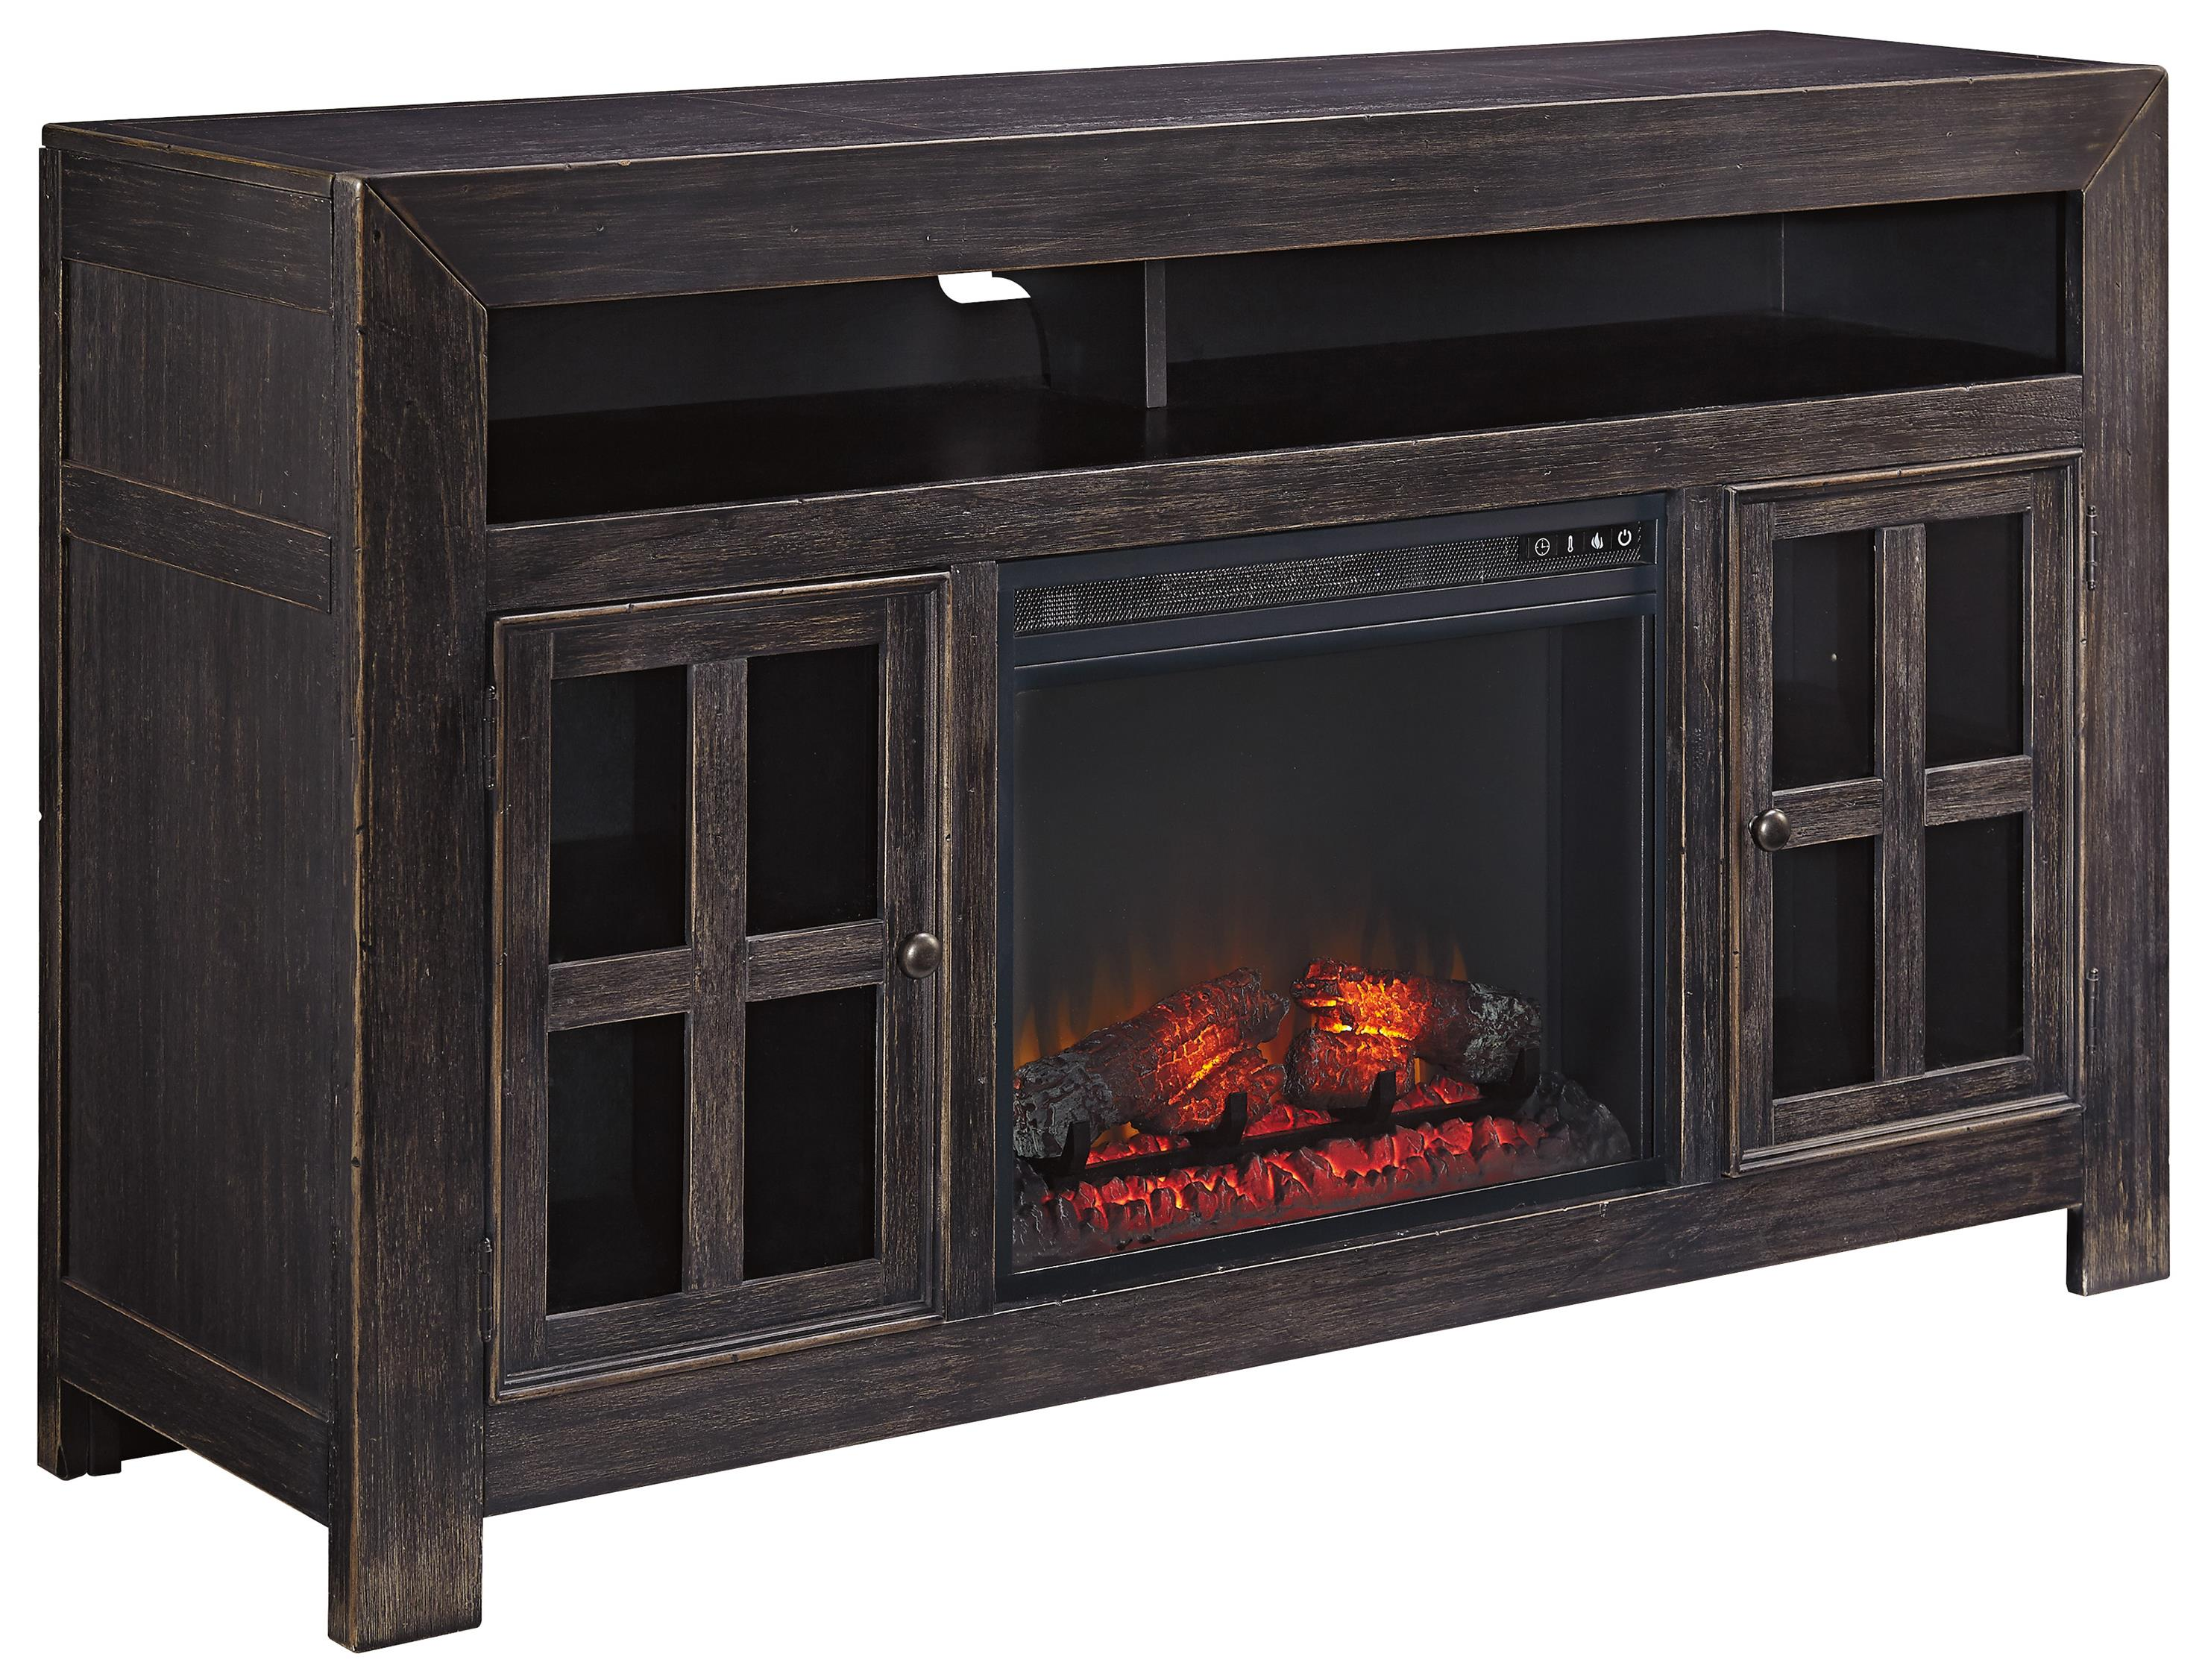 distressed black large tv stand with electric fireplace unit by signature design by ashley. Black Bedroom Furniture Sets. Home Design Ideas